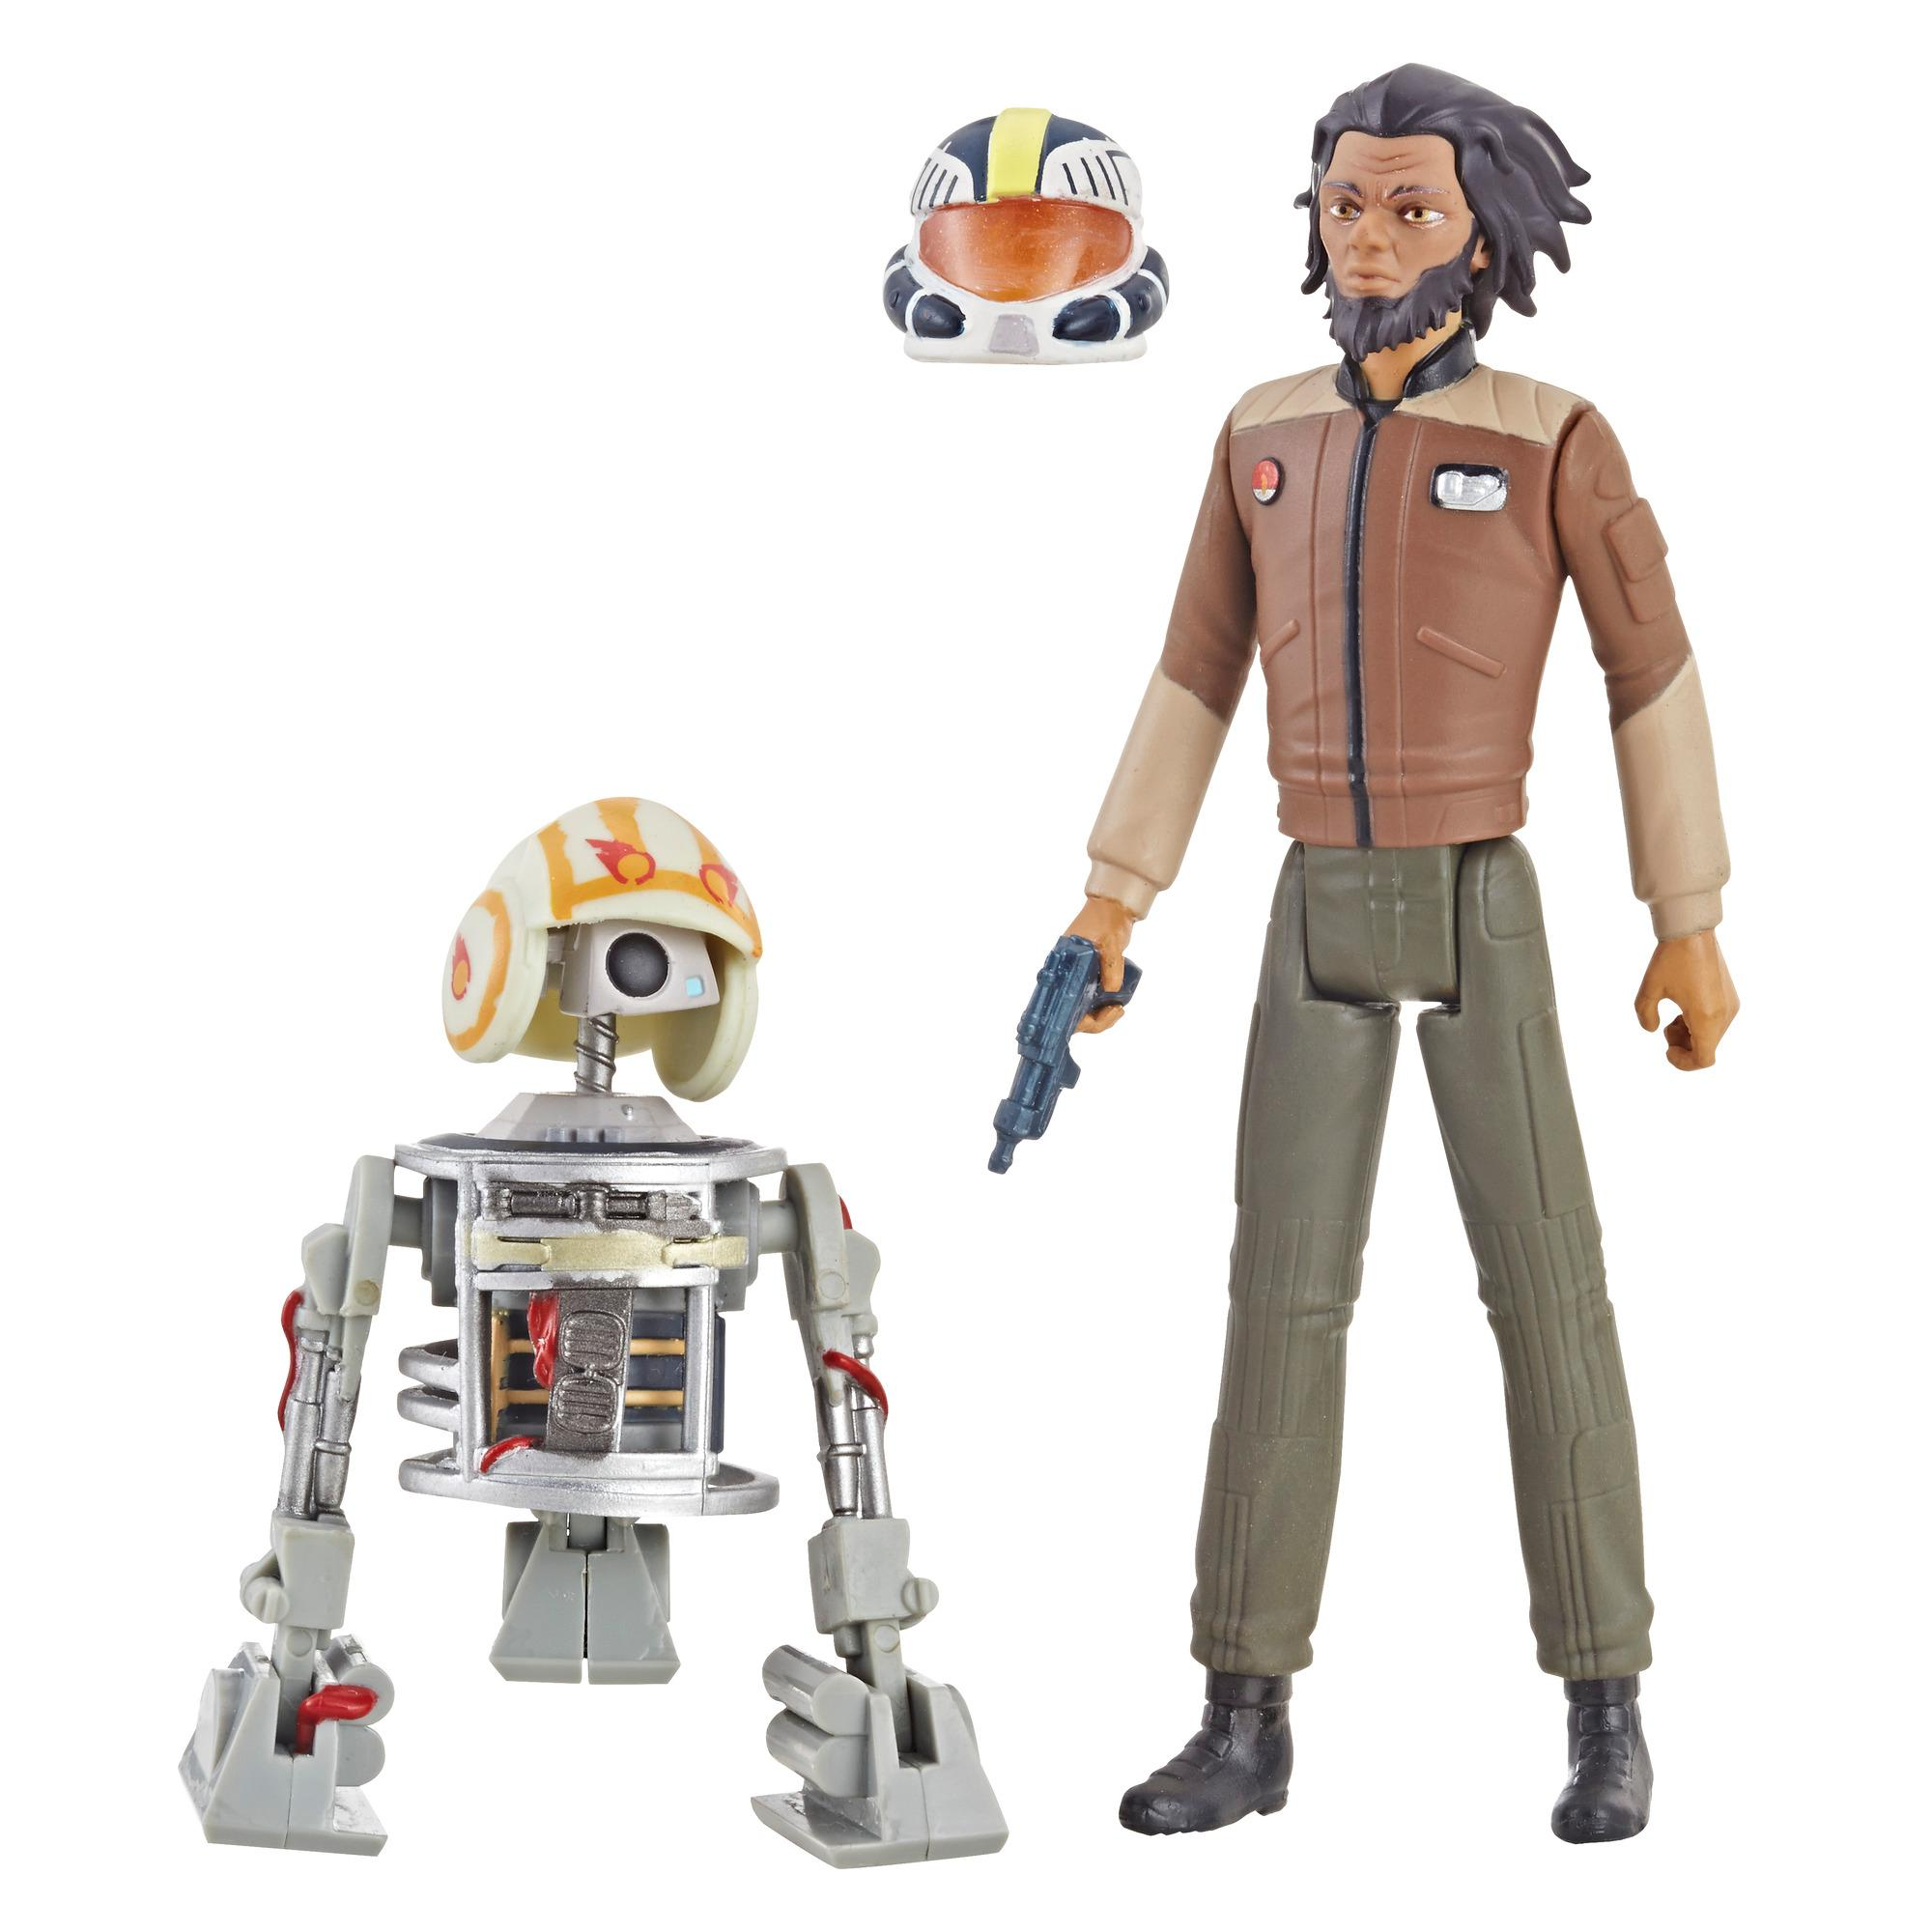 Star Wars Série animée Star Wars: Resistance - Duo de figurines Jarek Yeager de 9,5 cm et Bucket (R1-J5)